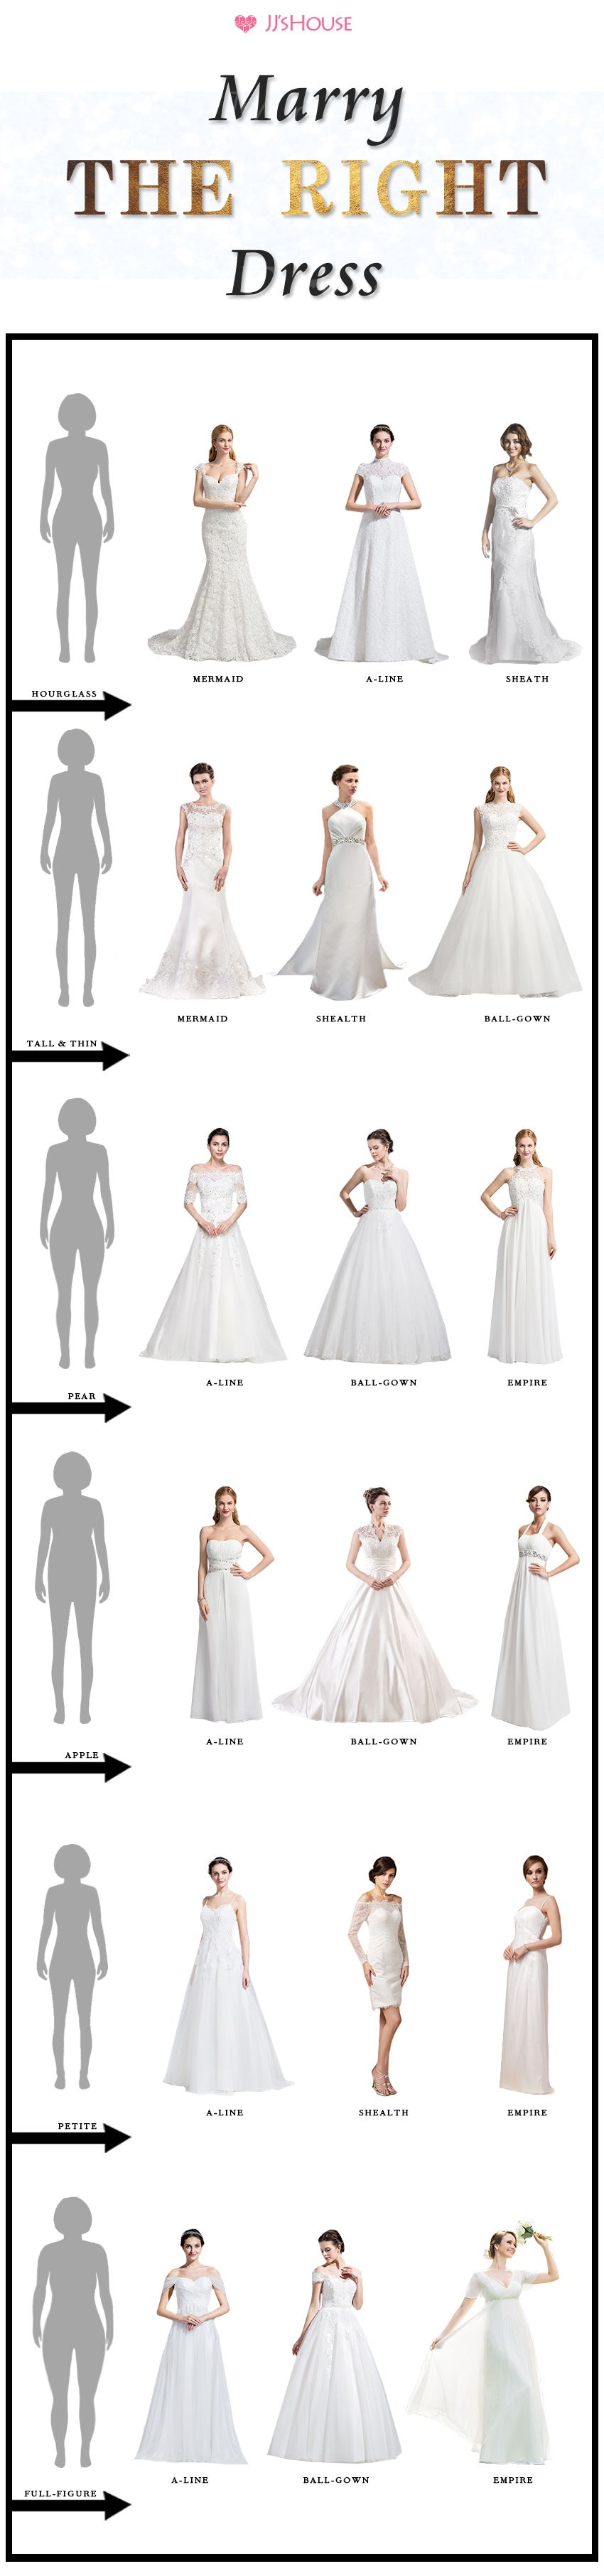 e3d940abecb1 Marry the Right Dress, find the perfect dress for your body type, Petite,  Tall, Apple-Shaped? Pear? Hour-glass? We have your dream gown for your big  day!